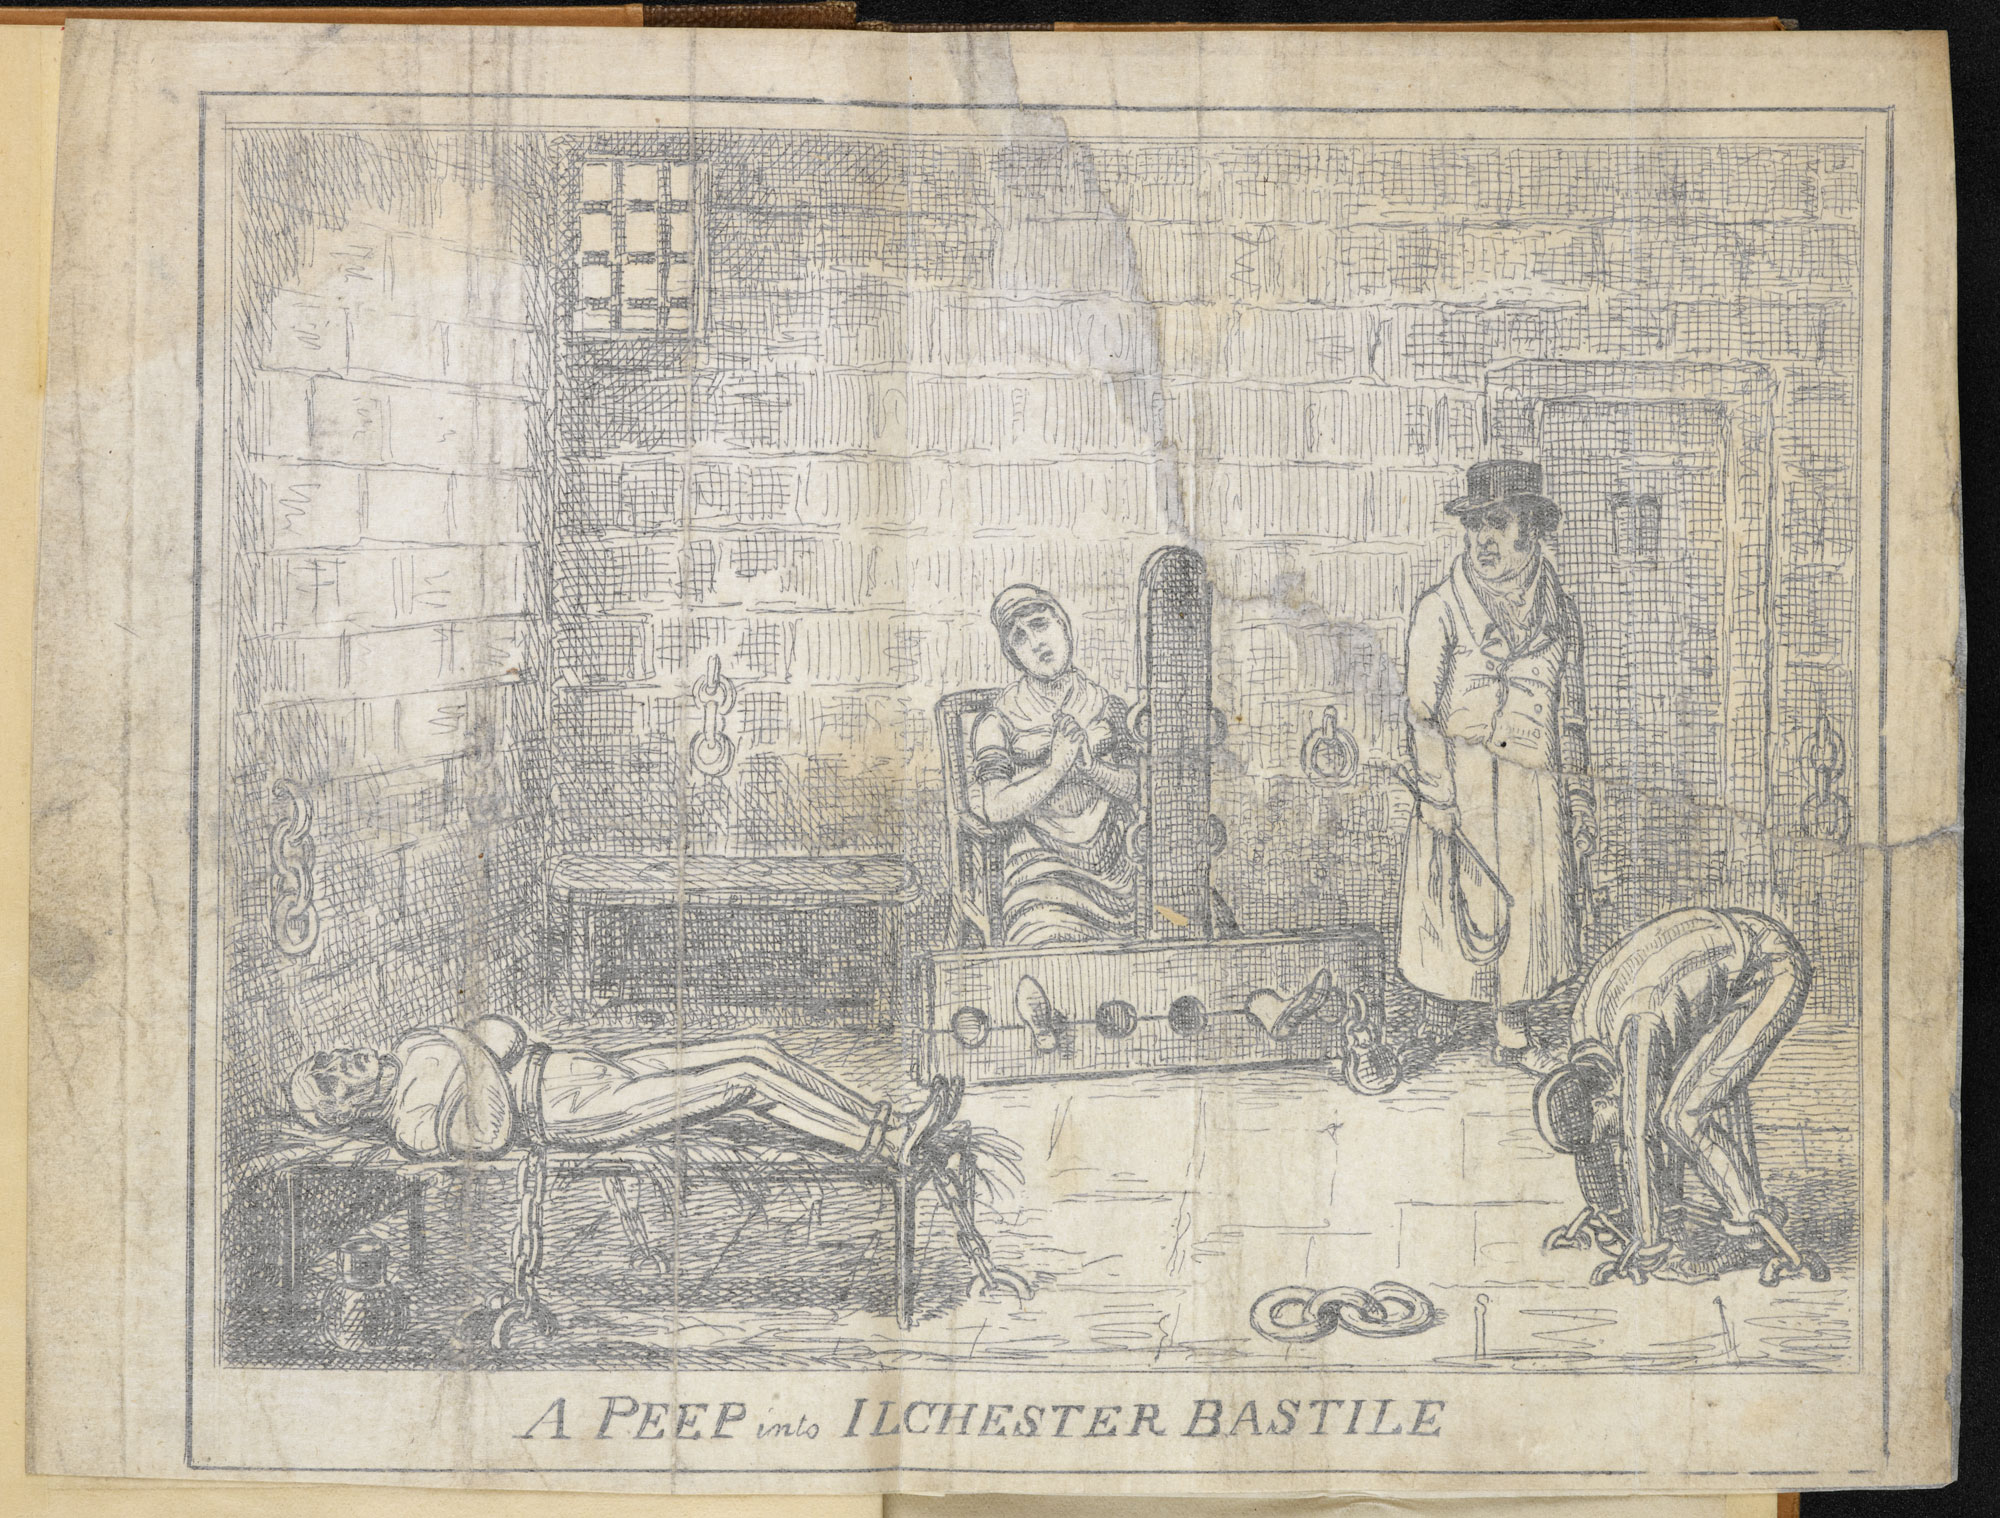 Account of poor prison conditions at Ilchester by Henry Hunt [page: fold-out frontispiece]